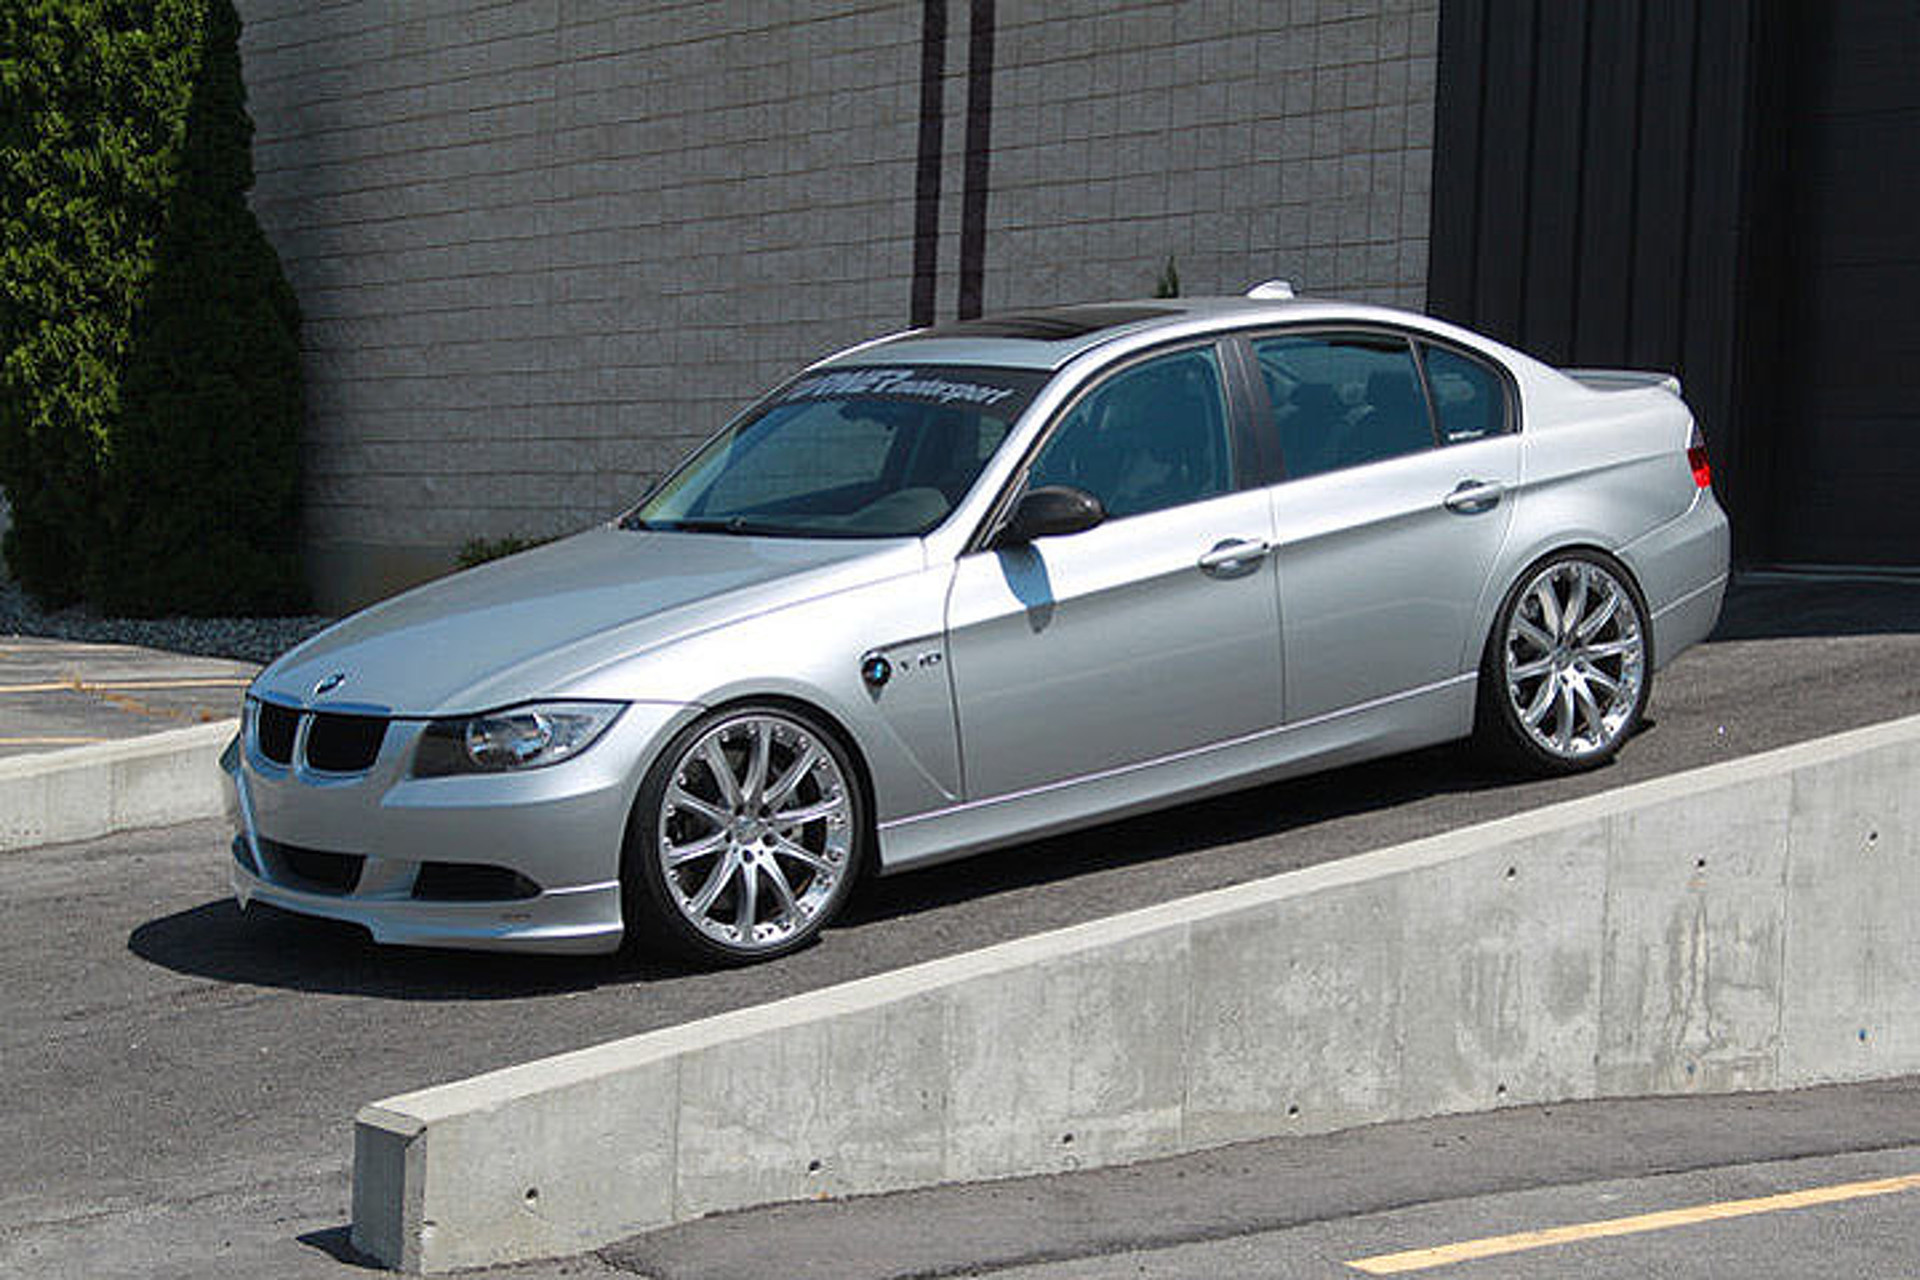 Bmw I Horsepower New Cars Used Cars Car Reviews And - 2005 bmw 328i